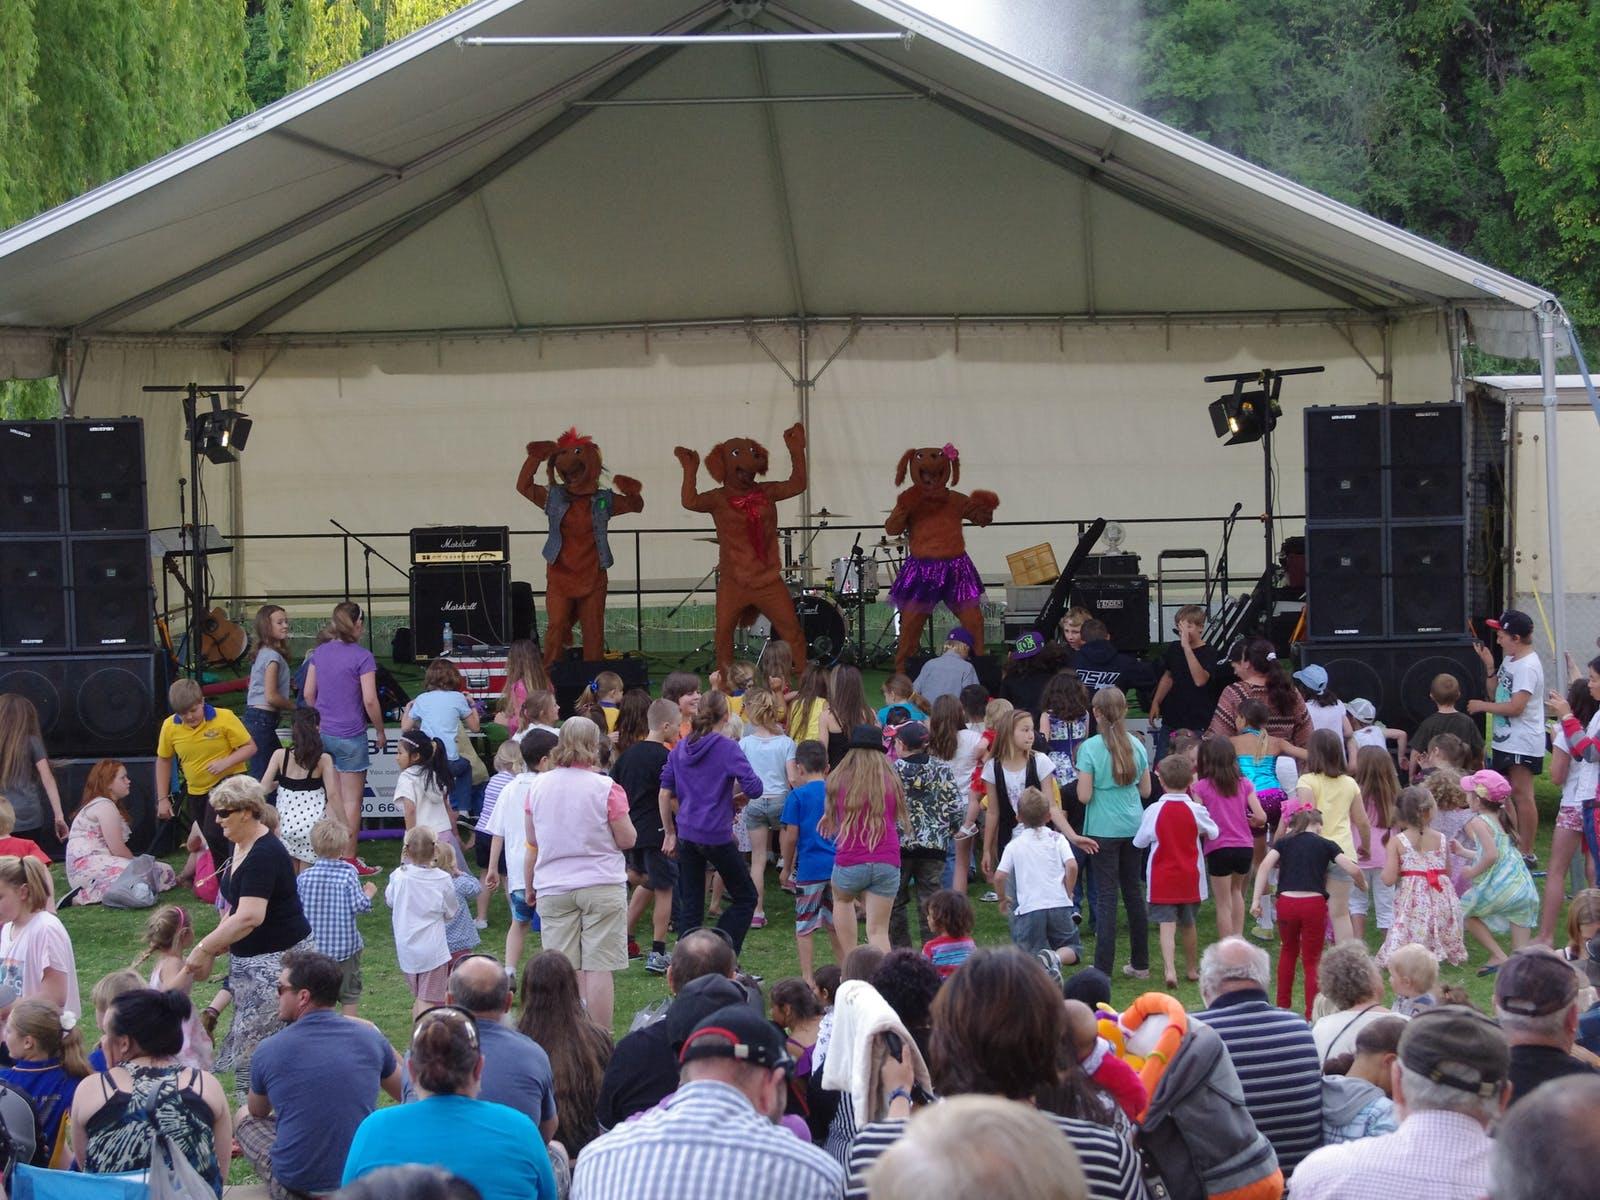 Hounddogs performing at Sapphire City Festival